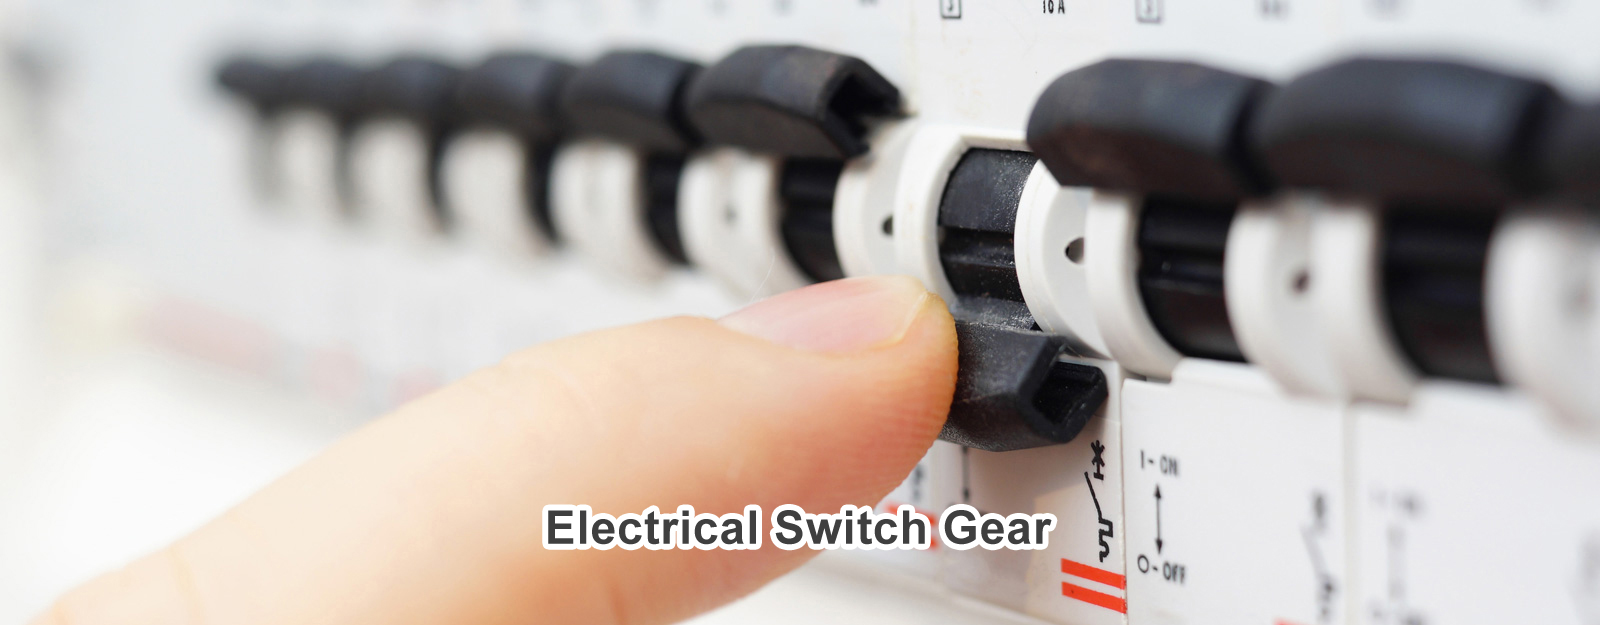 Tria Group Electrical Switch Gear Picture